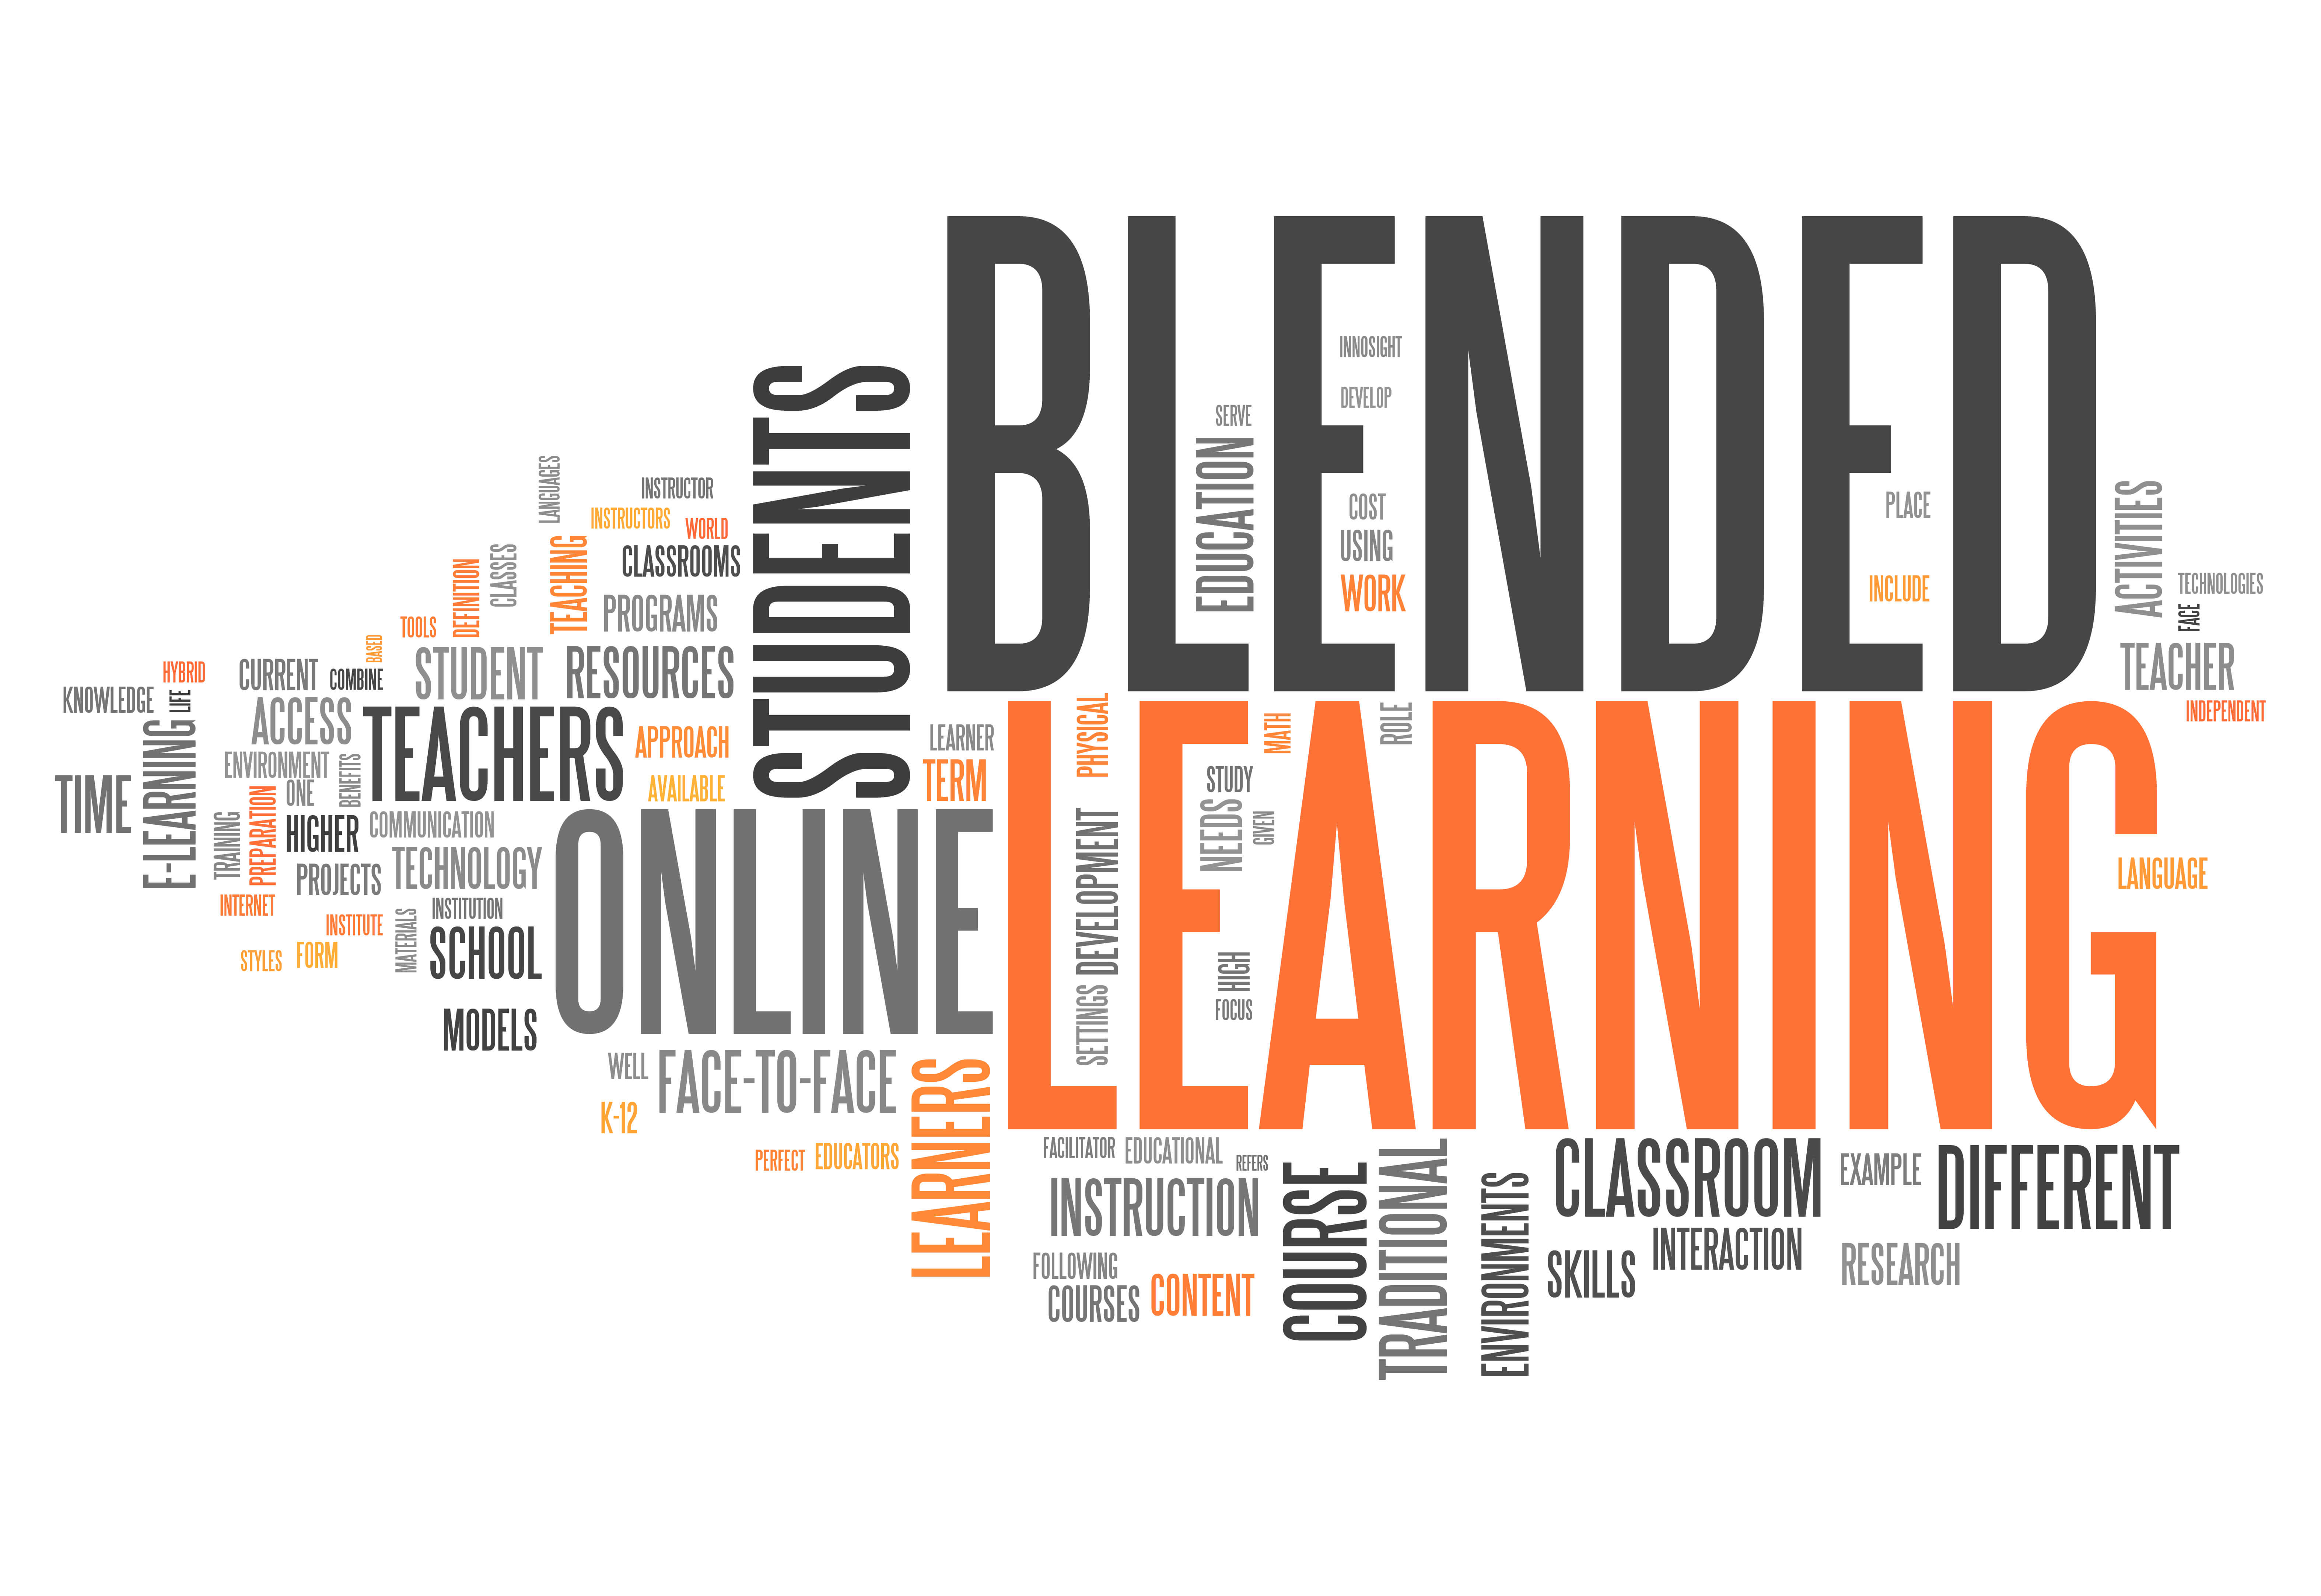 Blended Learning: 3 Things You Need to Know